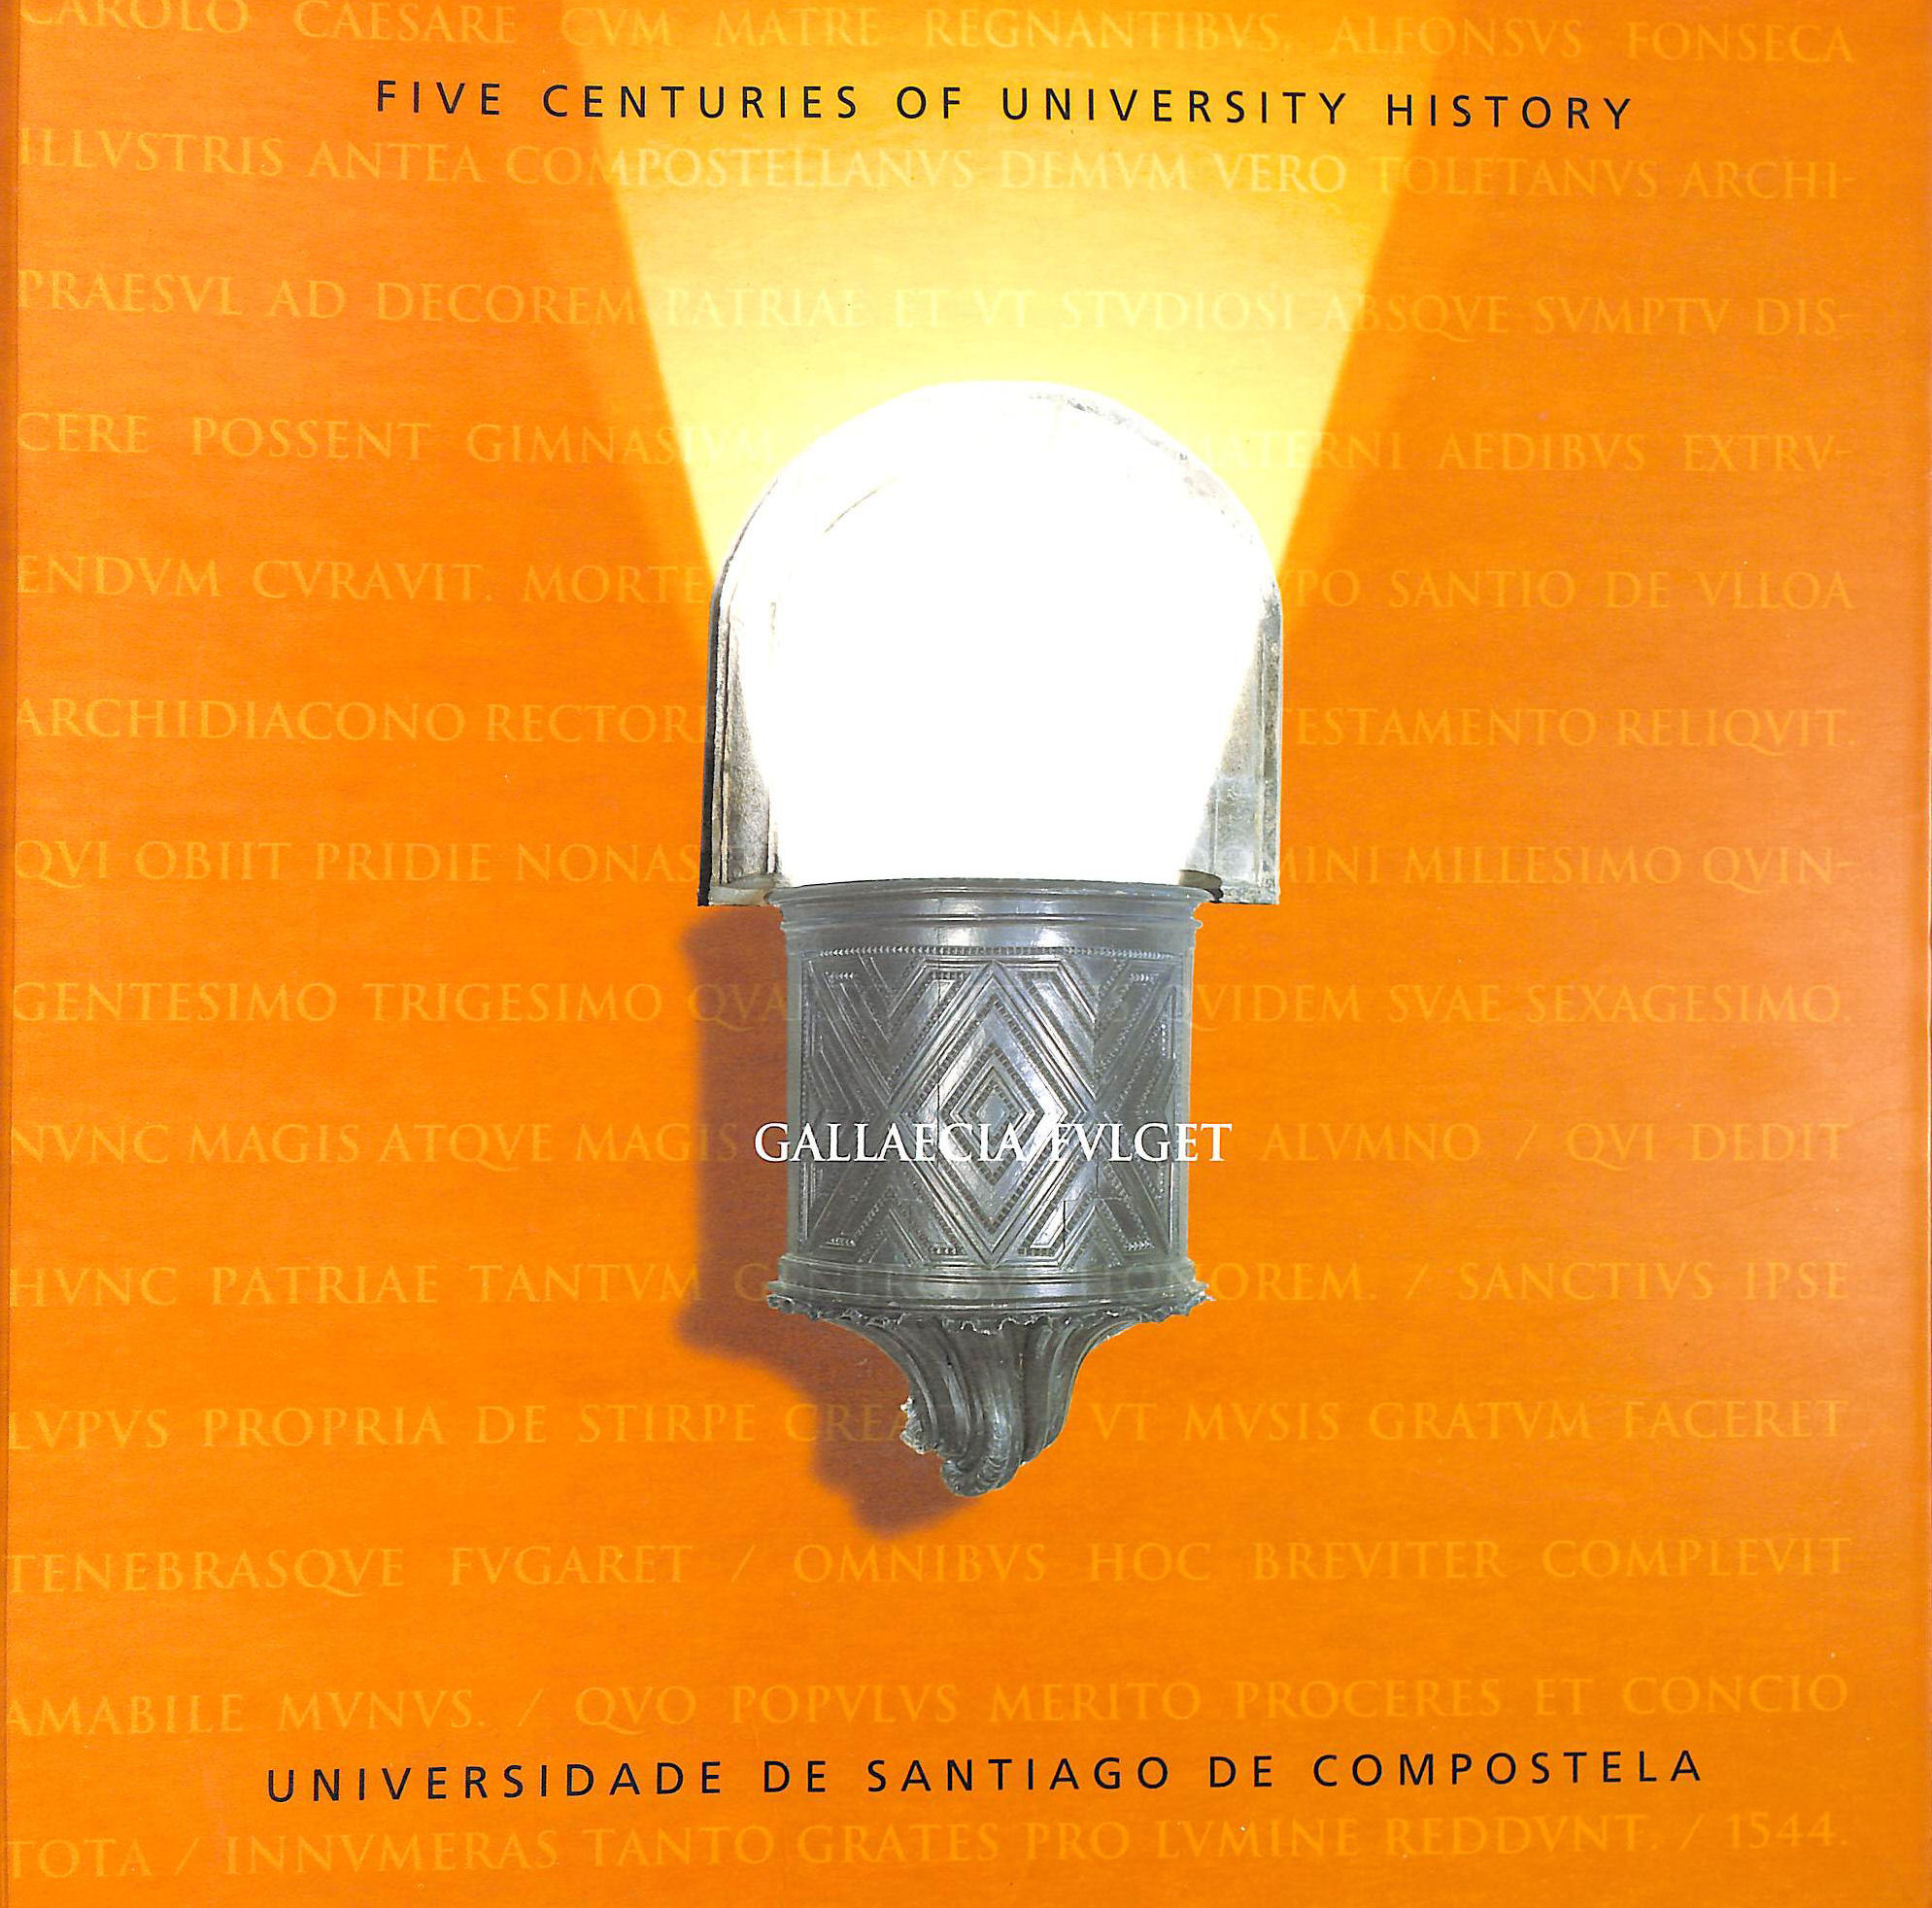 Image for Gallaecia Fulget [1495-1995]: Five Centuries of University History